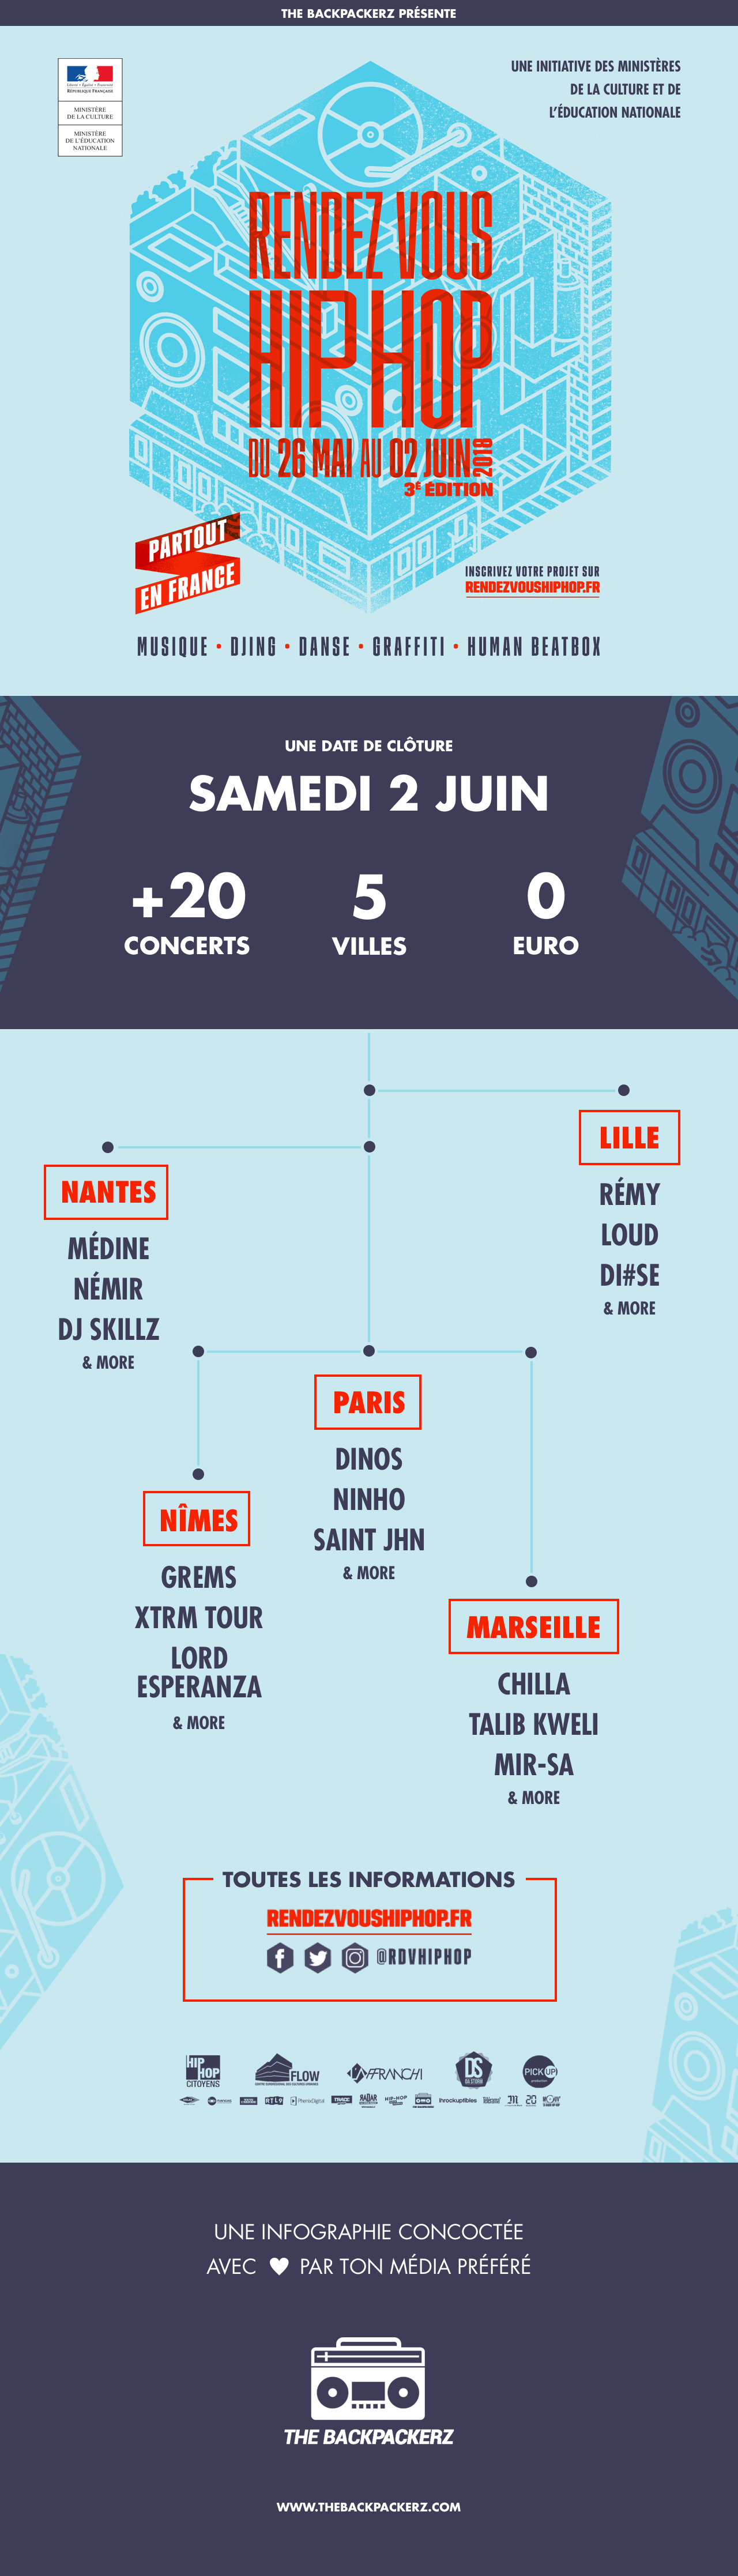 infographie-rendez-vous-hiphop-2018-backpackerz